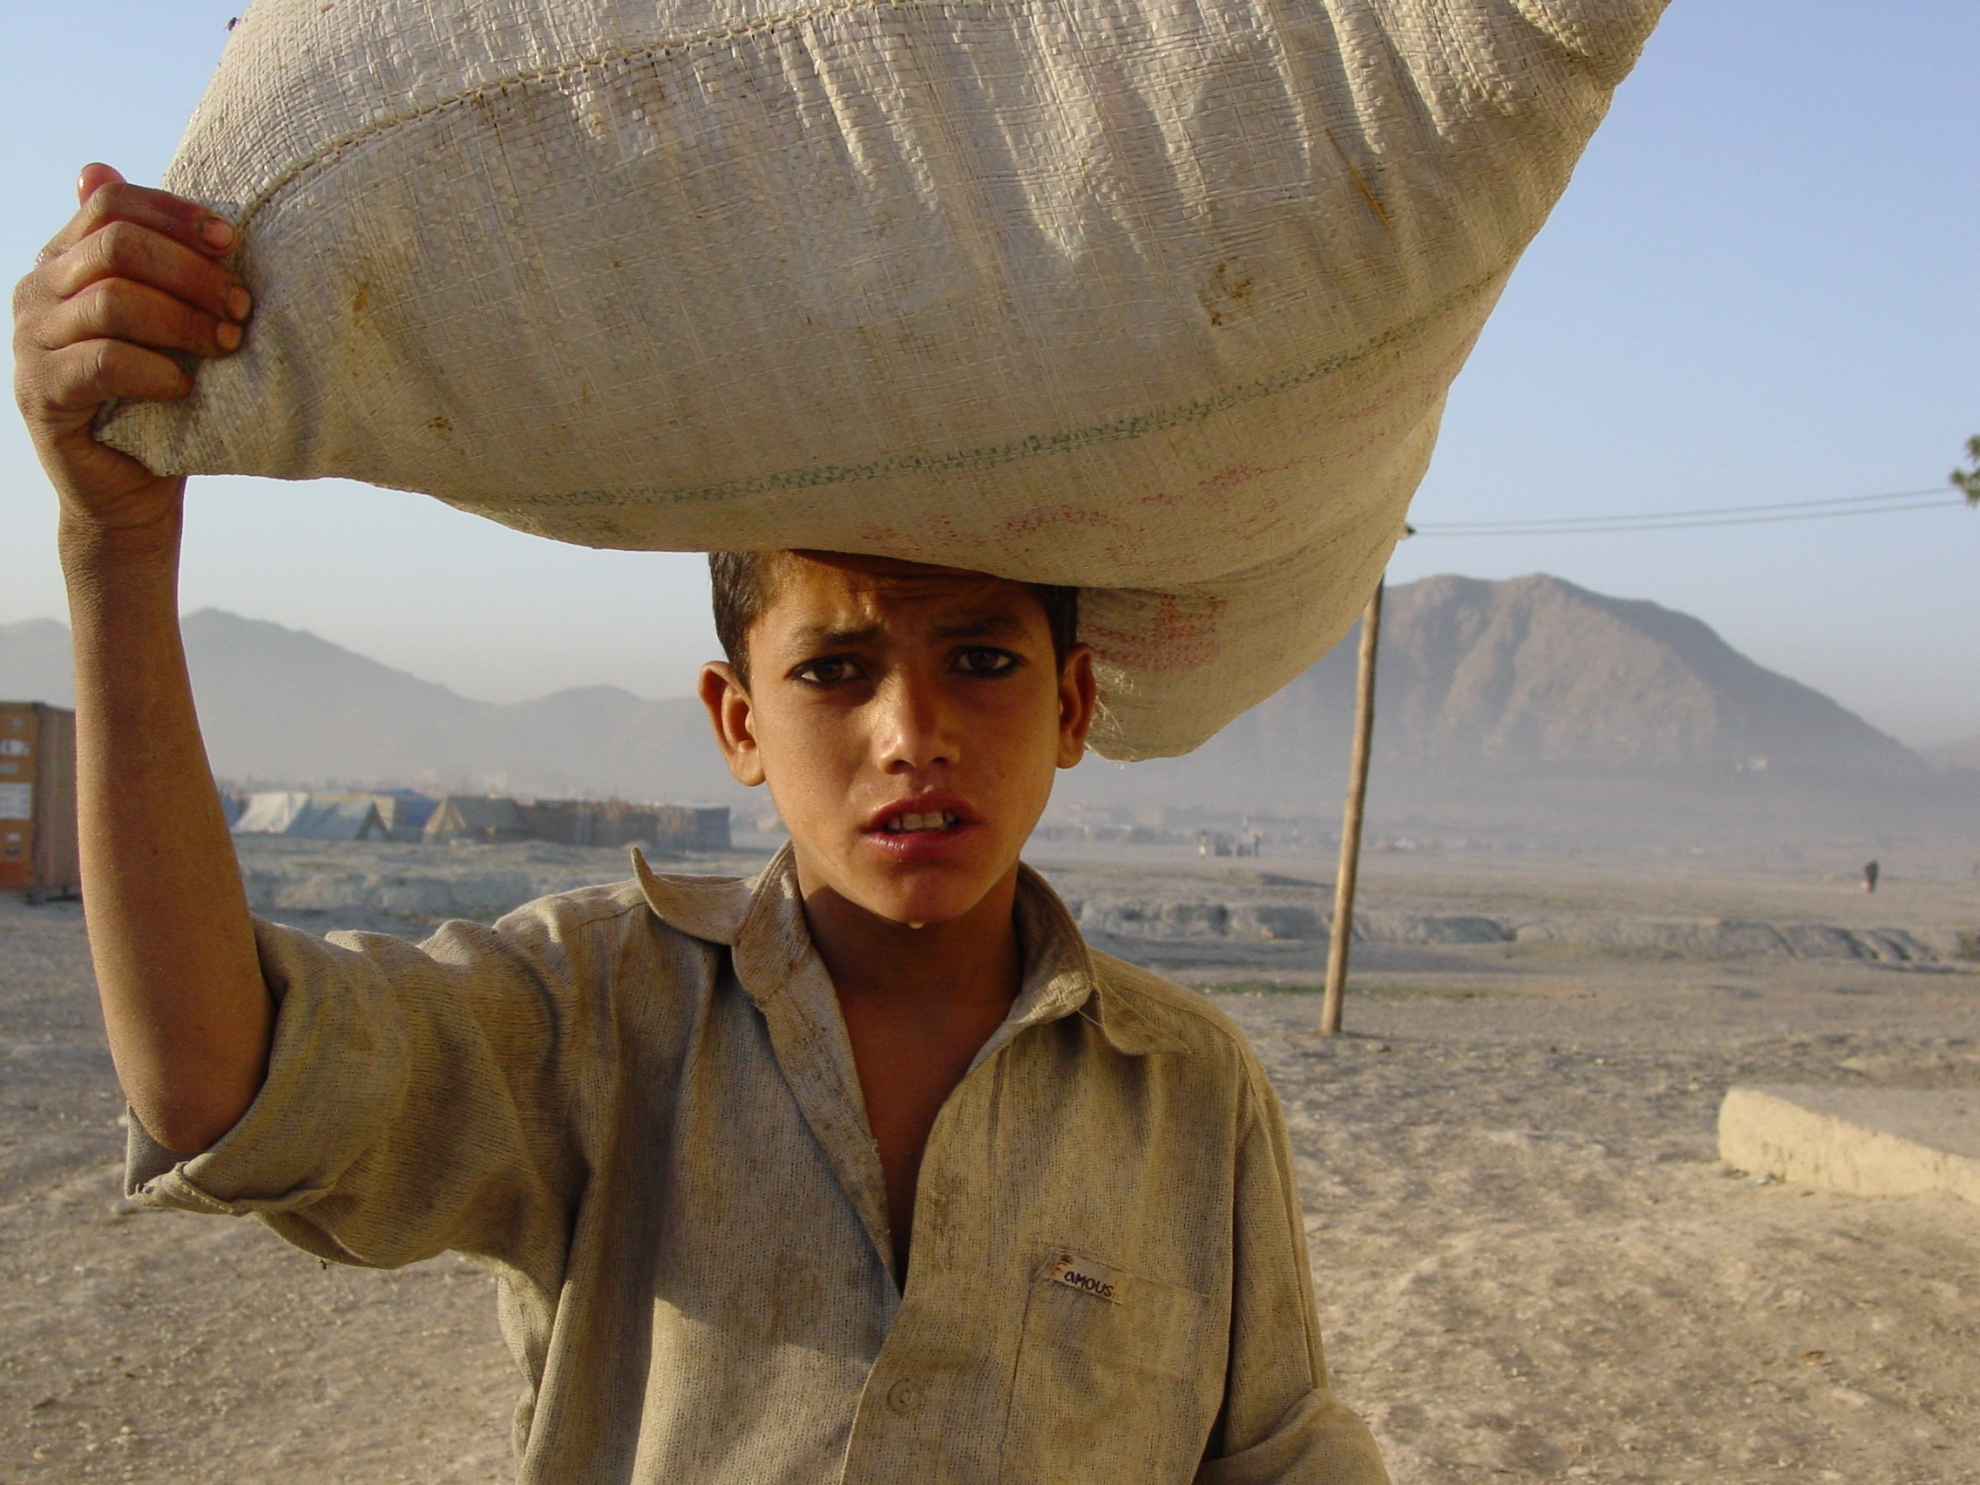 """""""I live here with my mum and my two younger siblings. We came to Kabul one year ago. Last winter was horrible, but now we've gotten some blankets and warm clothes"""". Photo: Jens Kjær Jensen, 2003"""